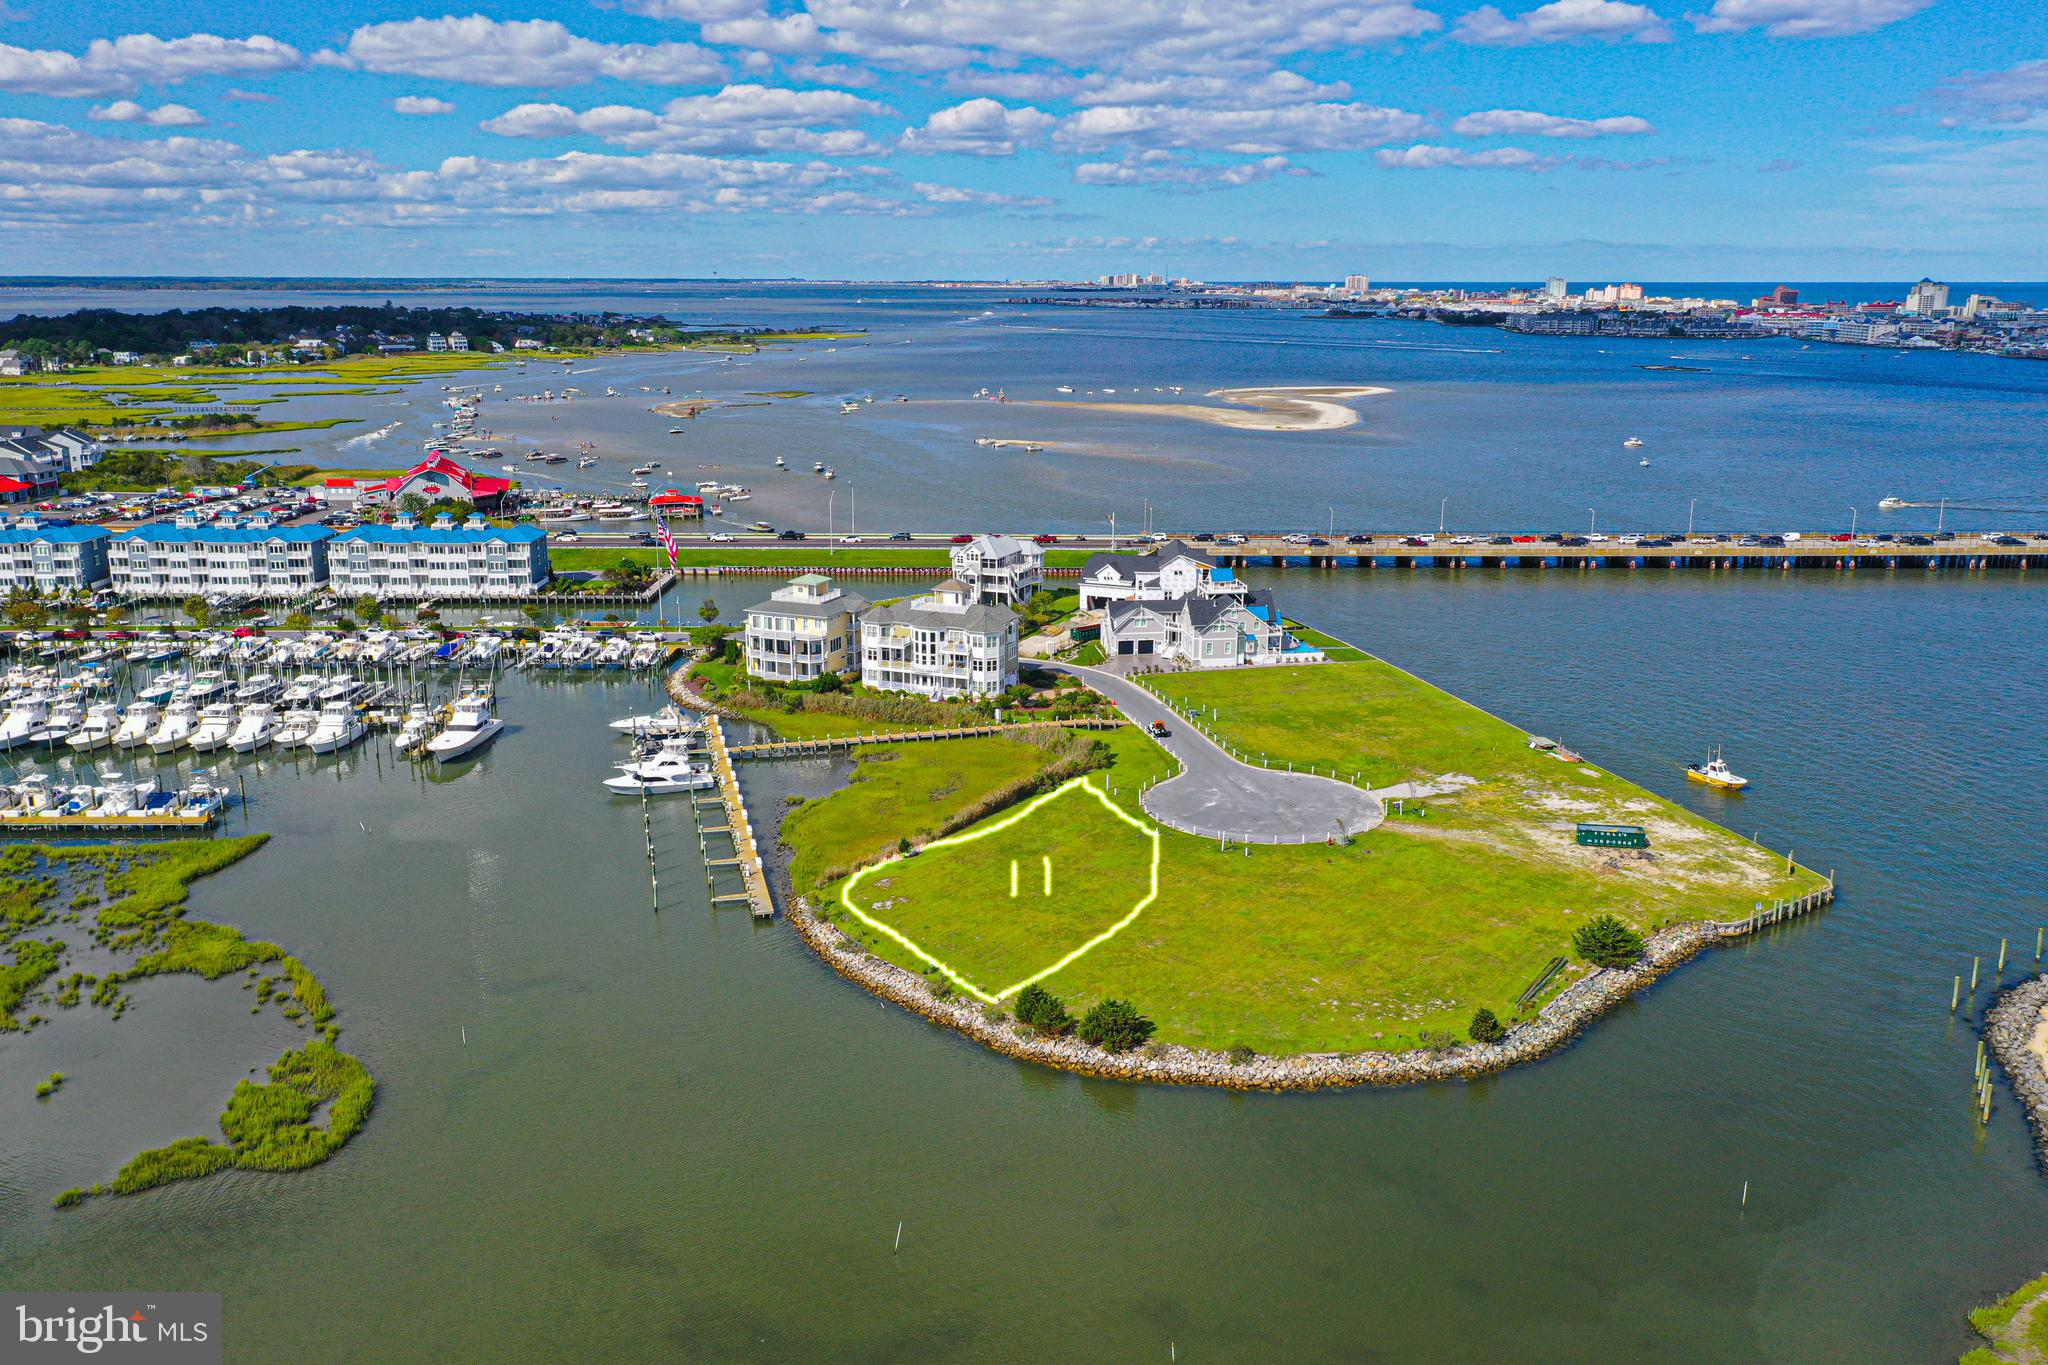 Premium waterfront lot located in a much sought after West Ocean City exclusive and private community. Panoramic views of the ocean city inlet, ocean, and marina. Lot conveys with a 42 ft, boat slip located inside a protective basin. Lot 10 is also available for purchase, see mls number MDWO116466. Lots are side-by-side. Contact listing agent for more information and most accurate details about the property.